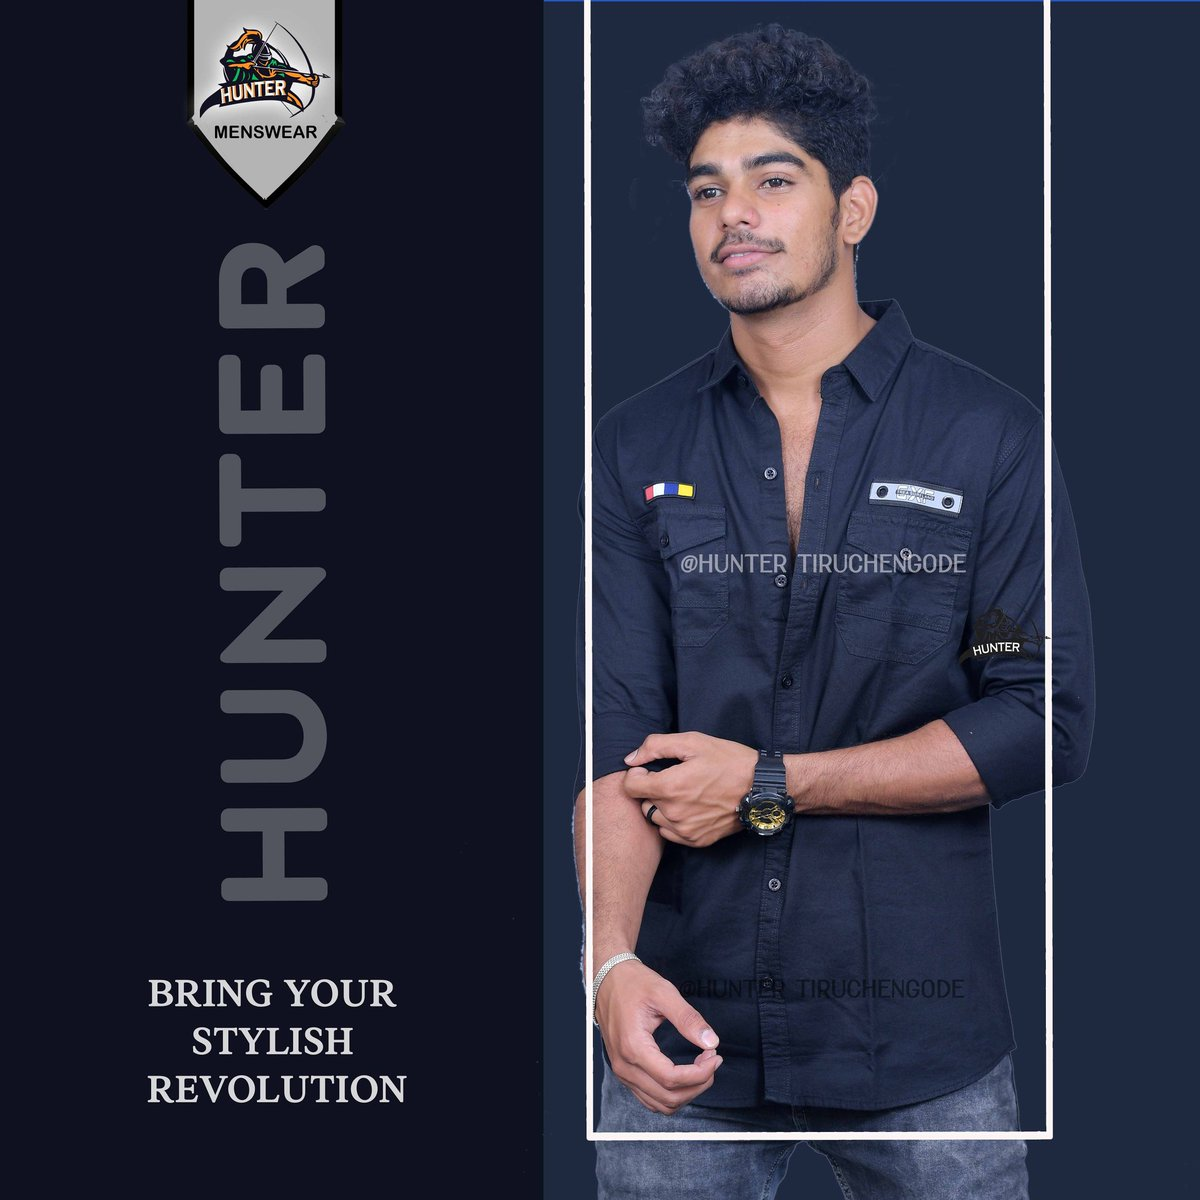 #plainshirts #brandedtshirt #stylish #revolution #post #partywear #festivals #season #casual #diwali #tiruchengode #namakkal #sankagiri #rasipuram #huntermodels #huntermenswear #tn34 #tn28 #tn52  #youngboy #winterfashion #partywearsuits #luxuryoutfit #ootd #shopping #superior https://t.co/LJTXMAcYba